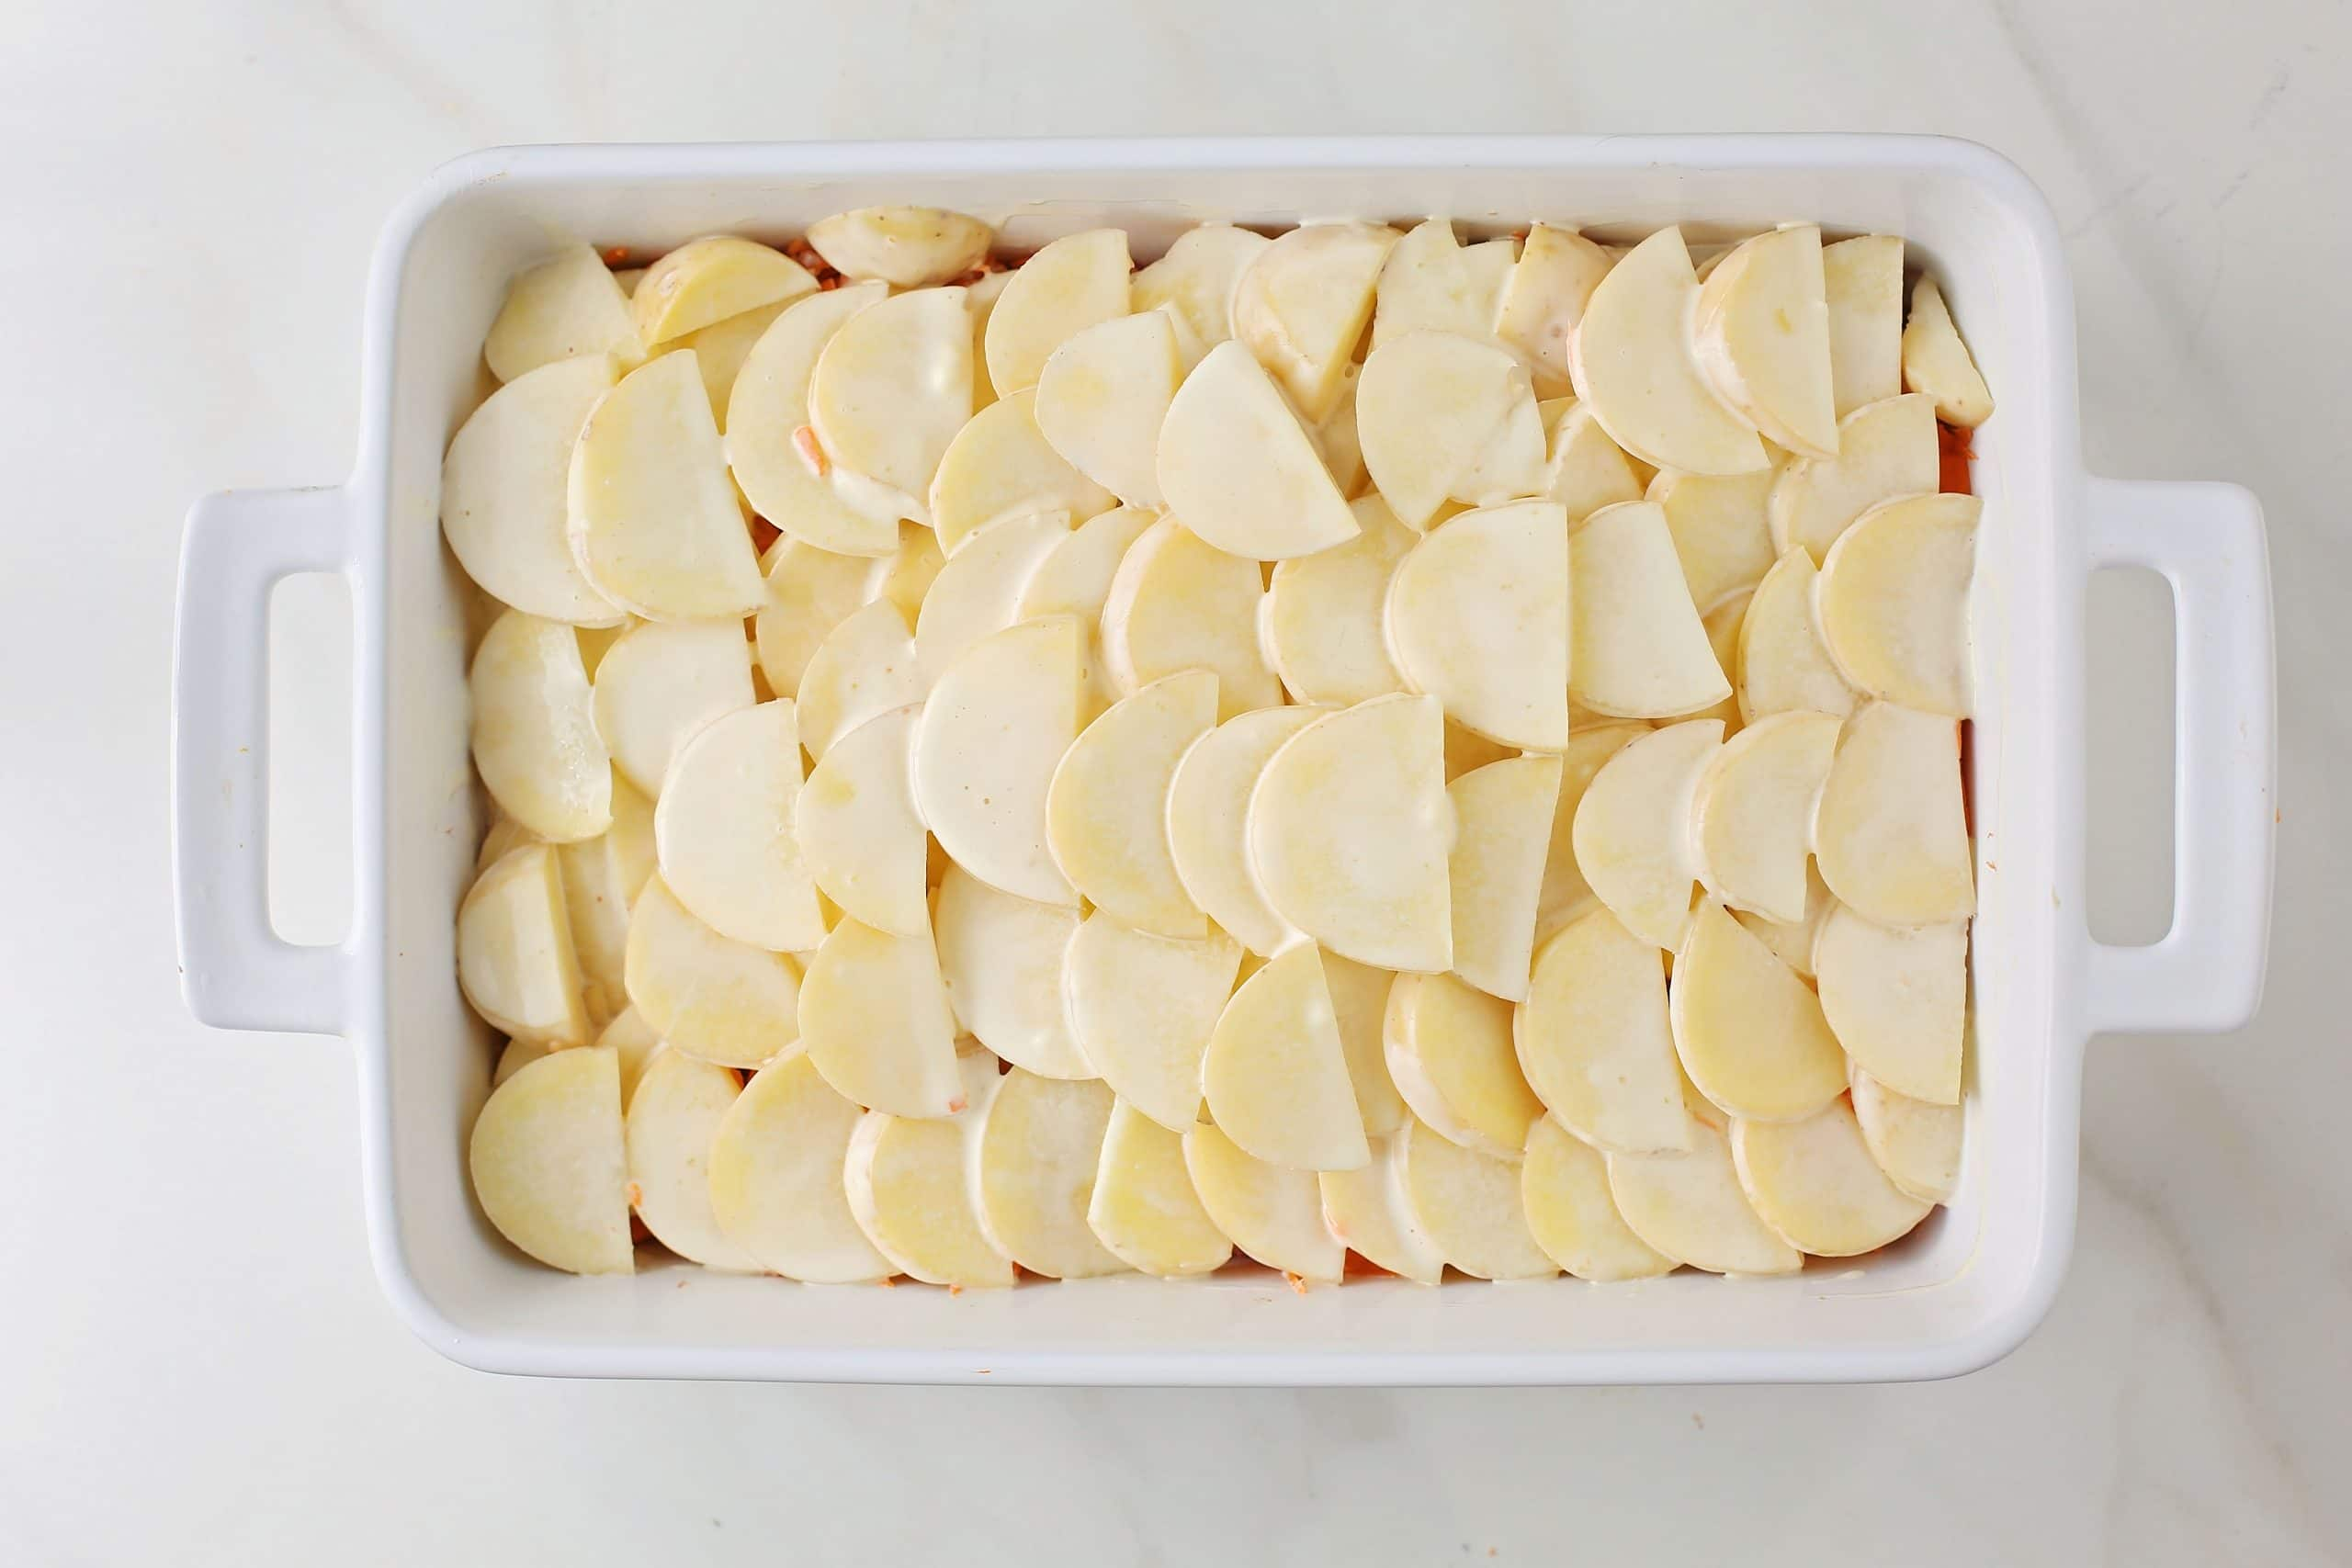 uncooked layer of potatoes in the making of casserole